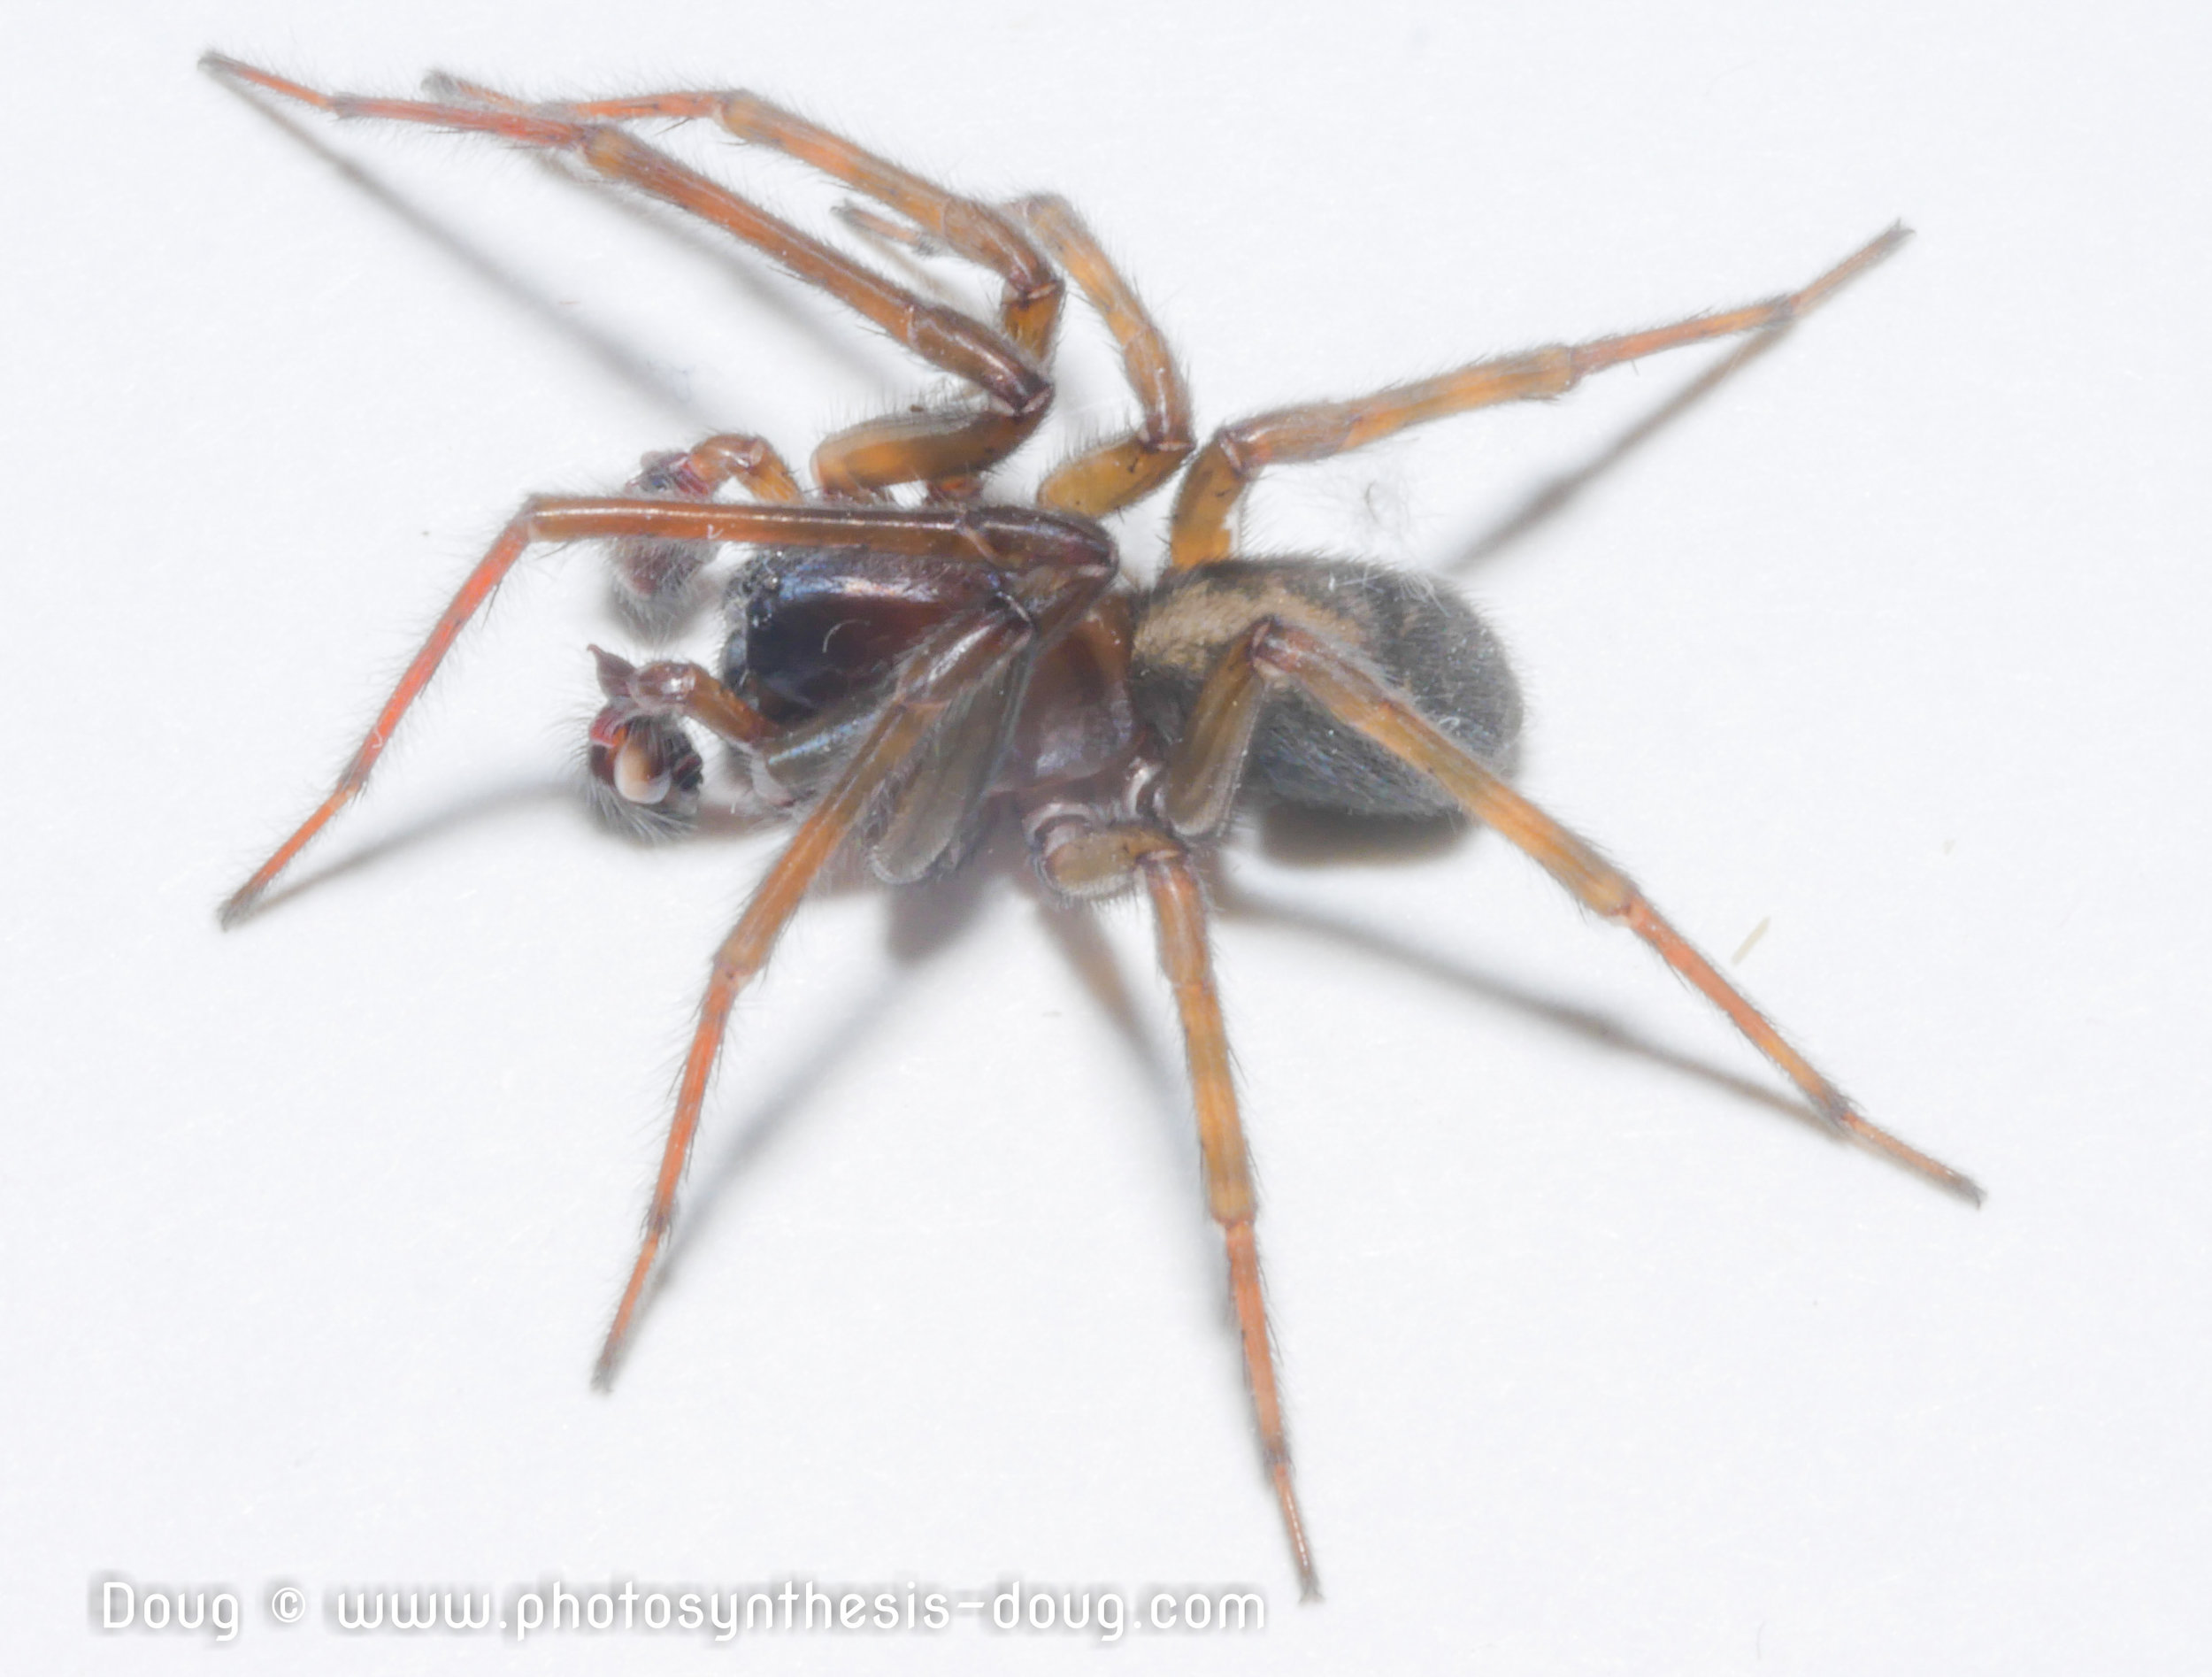 Common house spider photo by Doug Coulson